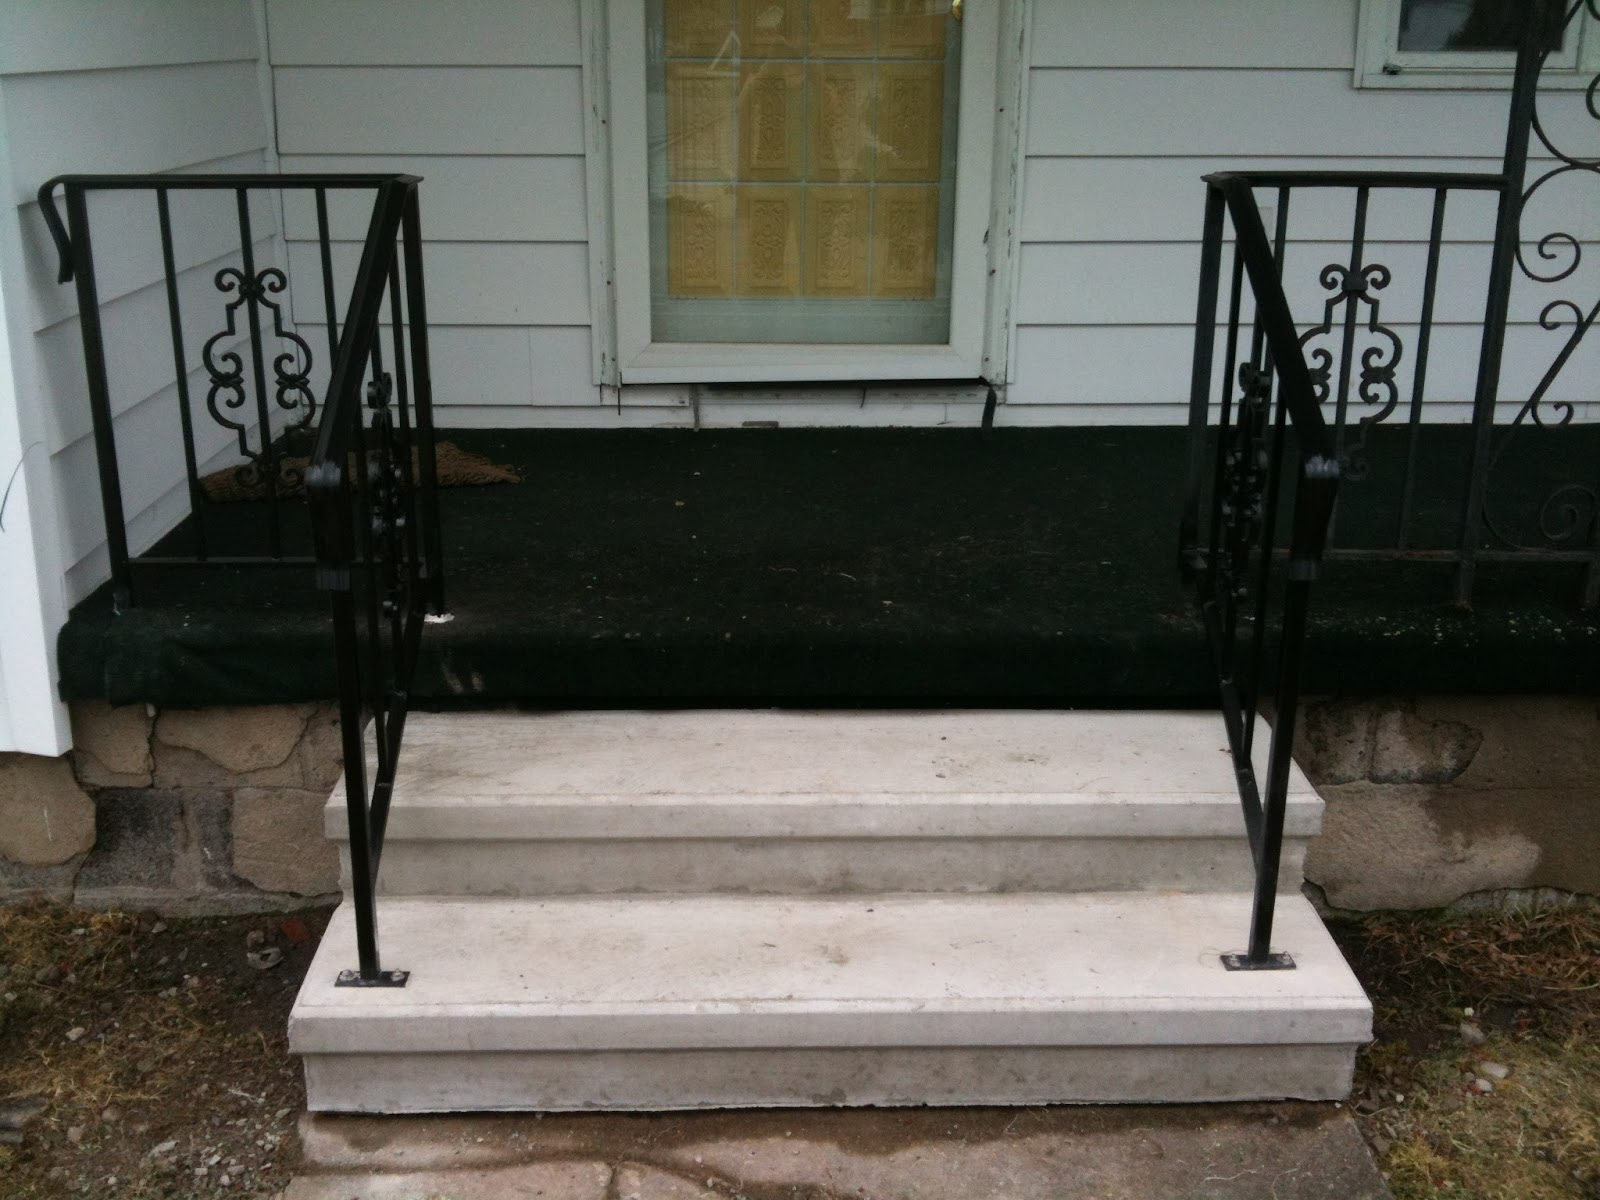 Replaced the front porch steps and railing. The company I used took the old railings and cut off the detail piece, sandblasted it and welded it onto the new railing so it would match the rest of the porch. It came out so nice.